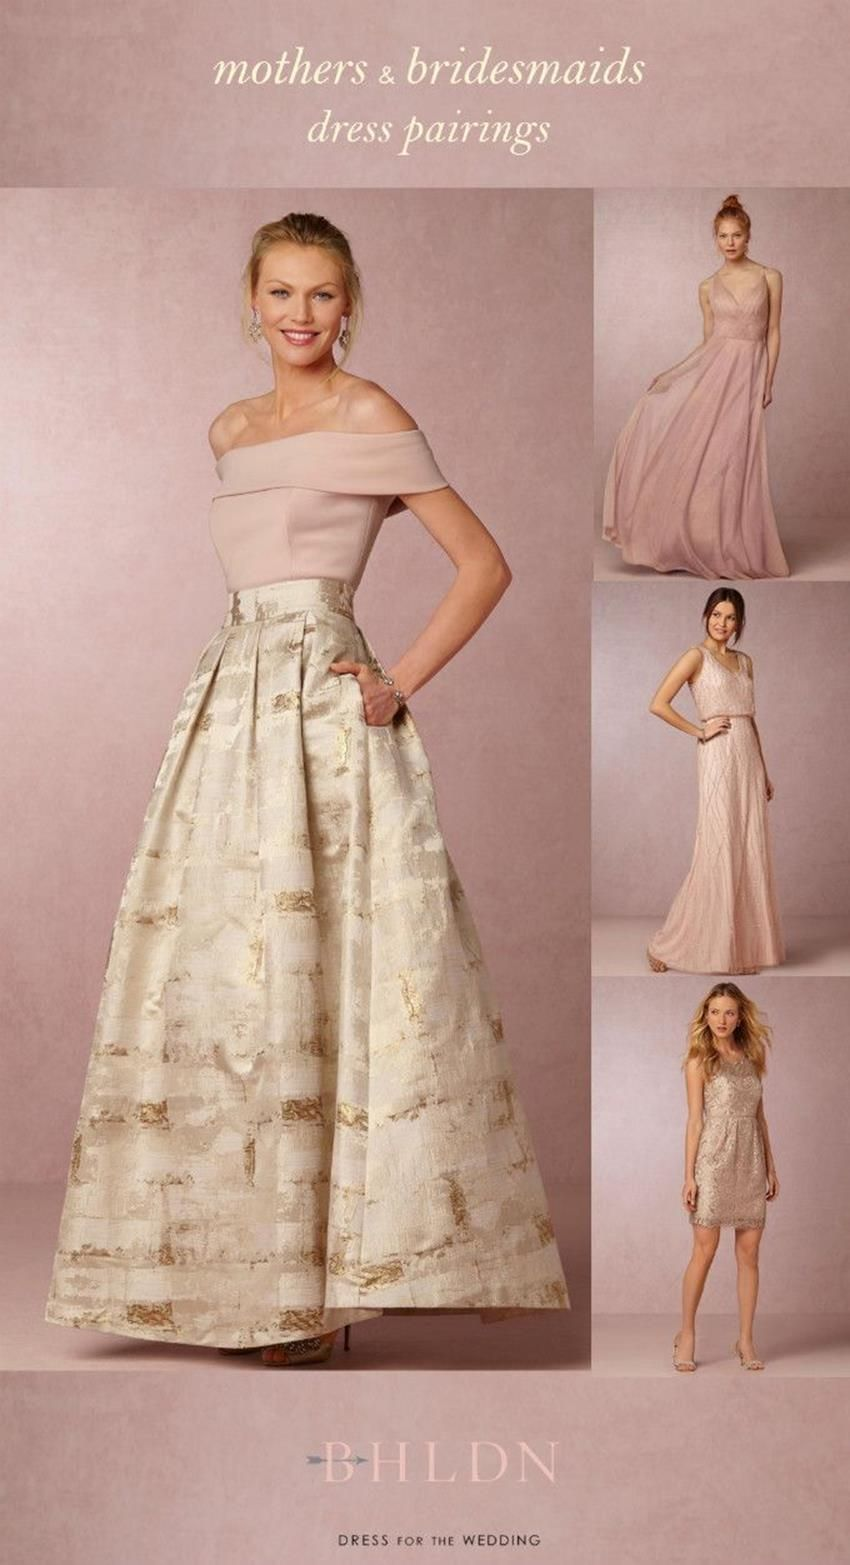 Best dresses to wear to a spring wedding   Best Beautiful Mother Of The Groom Dresses For Spring Wedding